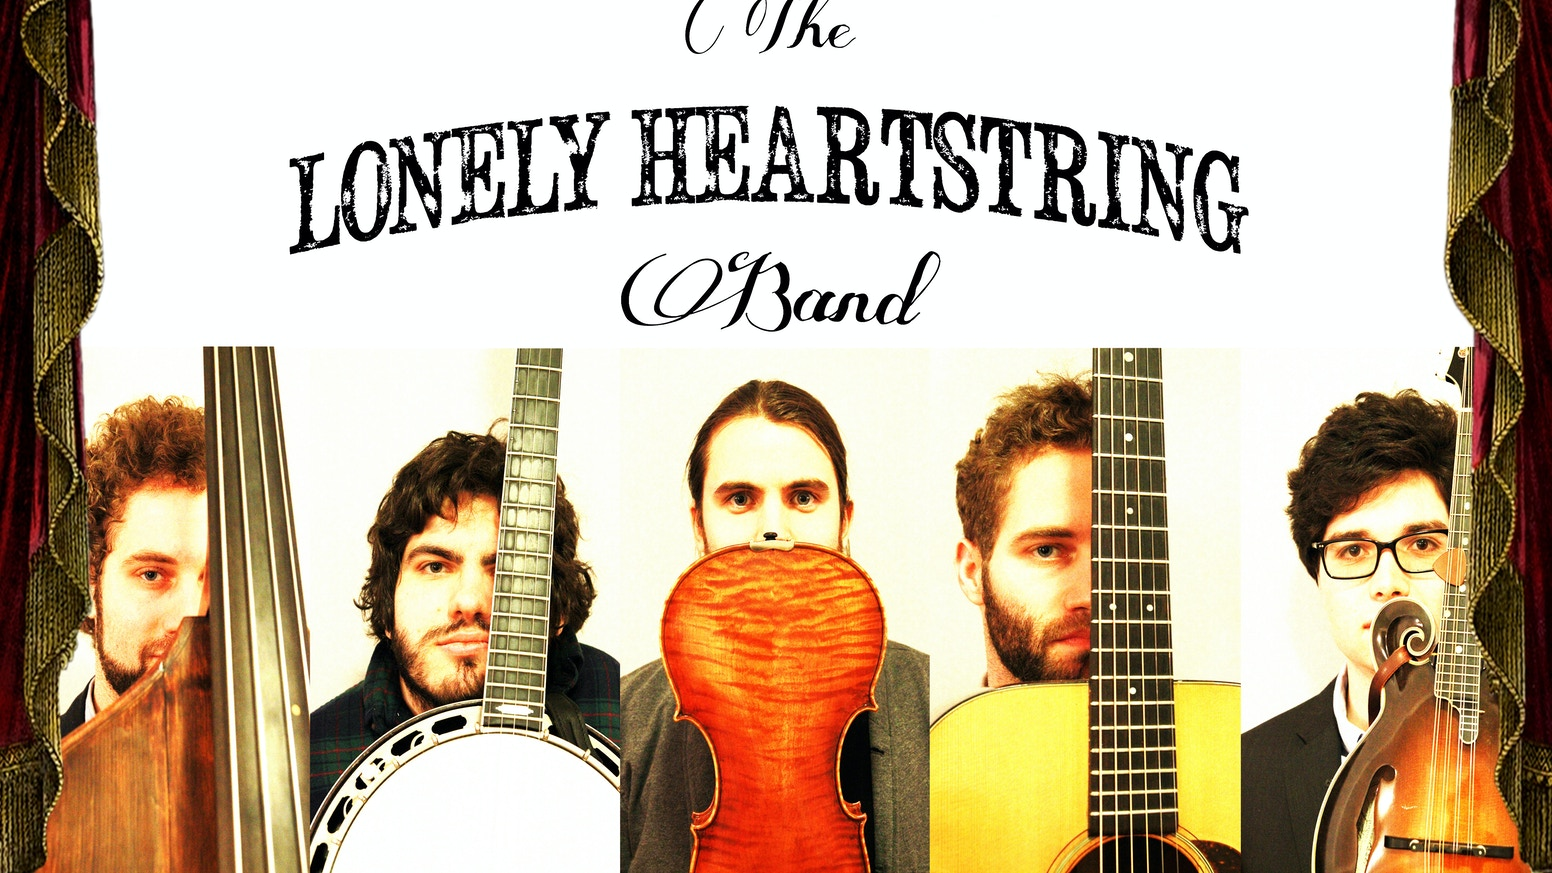 the lonely heartstring band full length album by the lonely